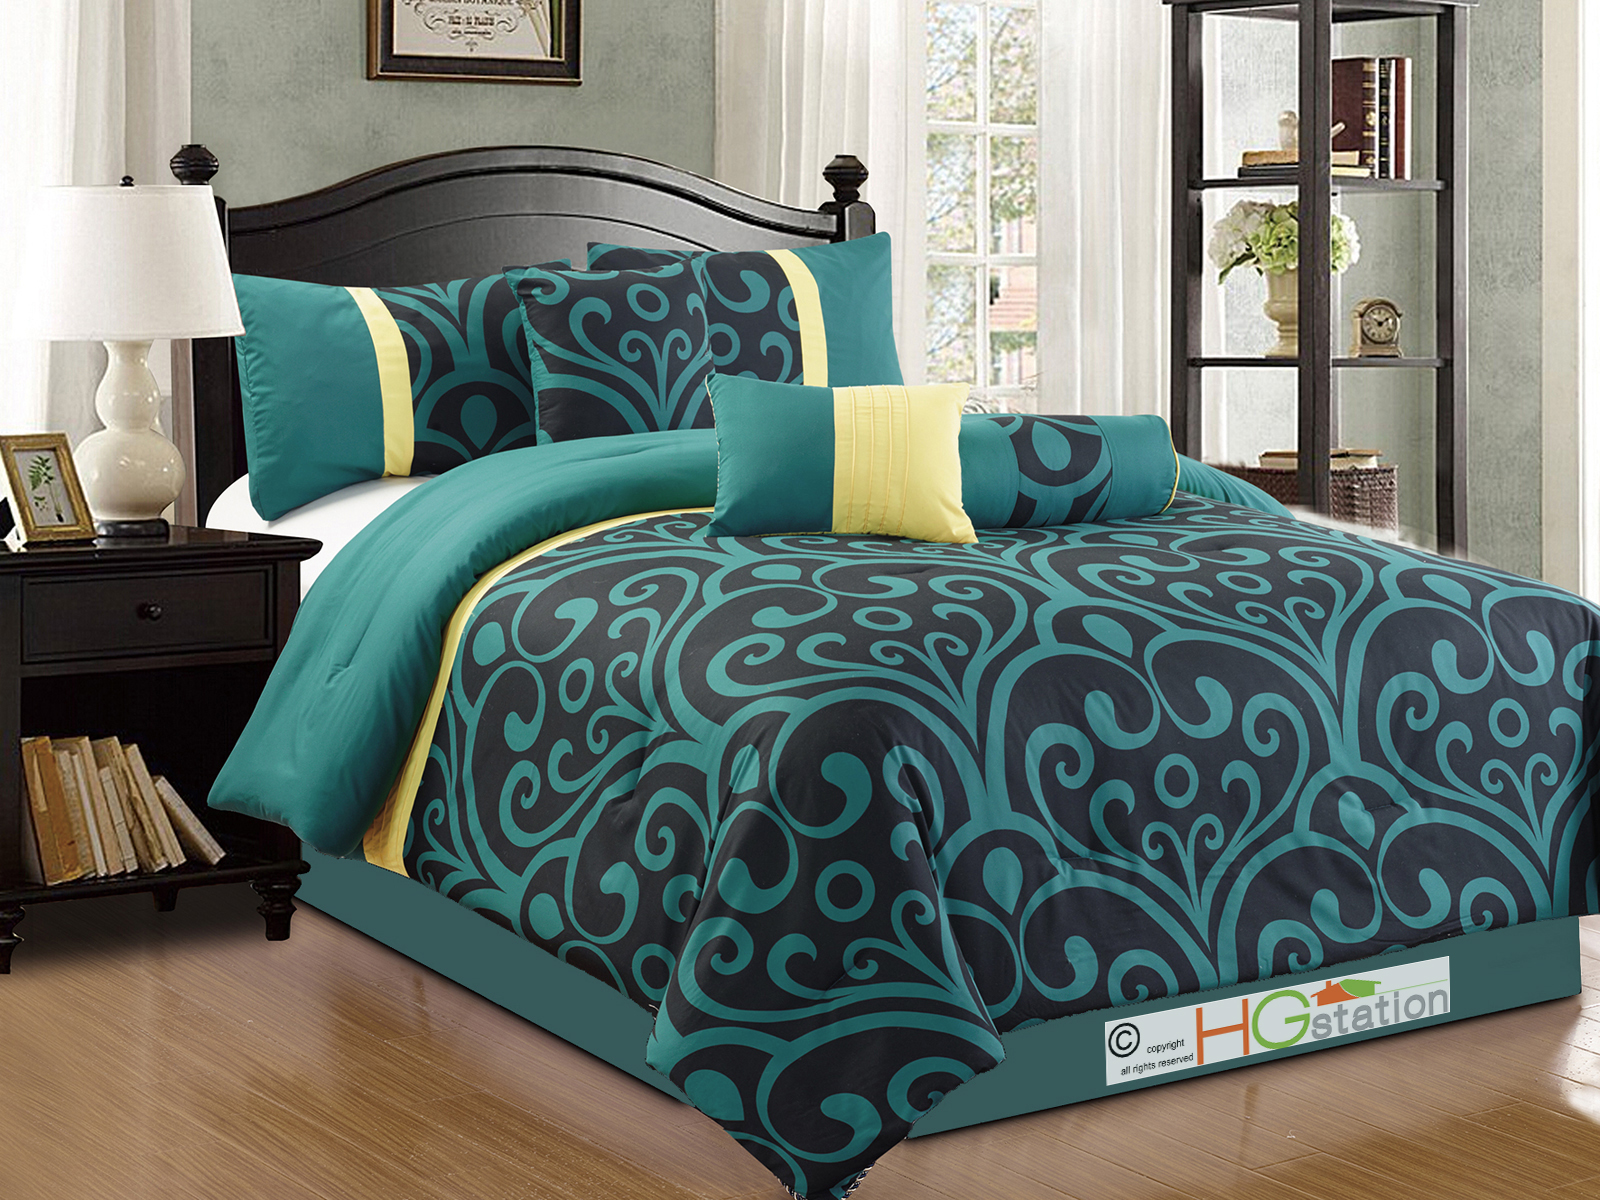 7 pc bold royal damask floral scroll comforter set teal blue black yellow king ebay. Black Bedroom Furniture Sets. Home Design Ideas